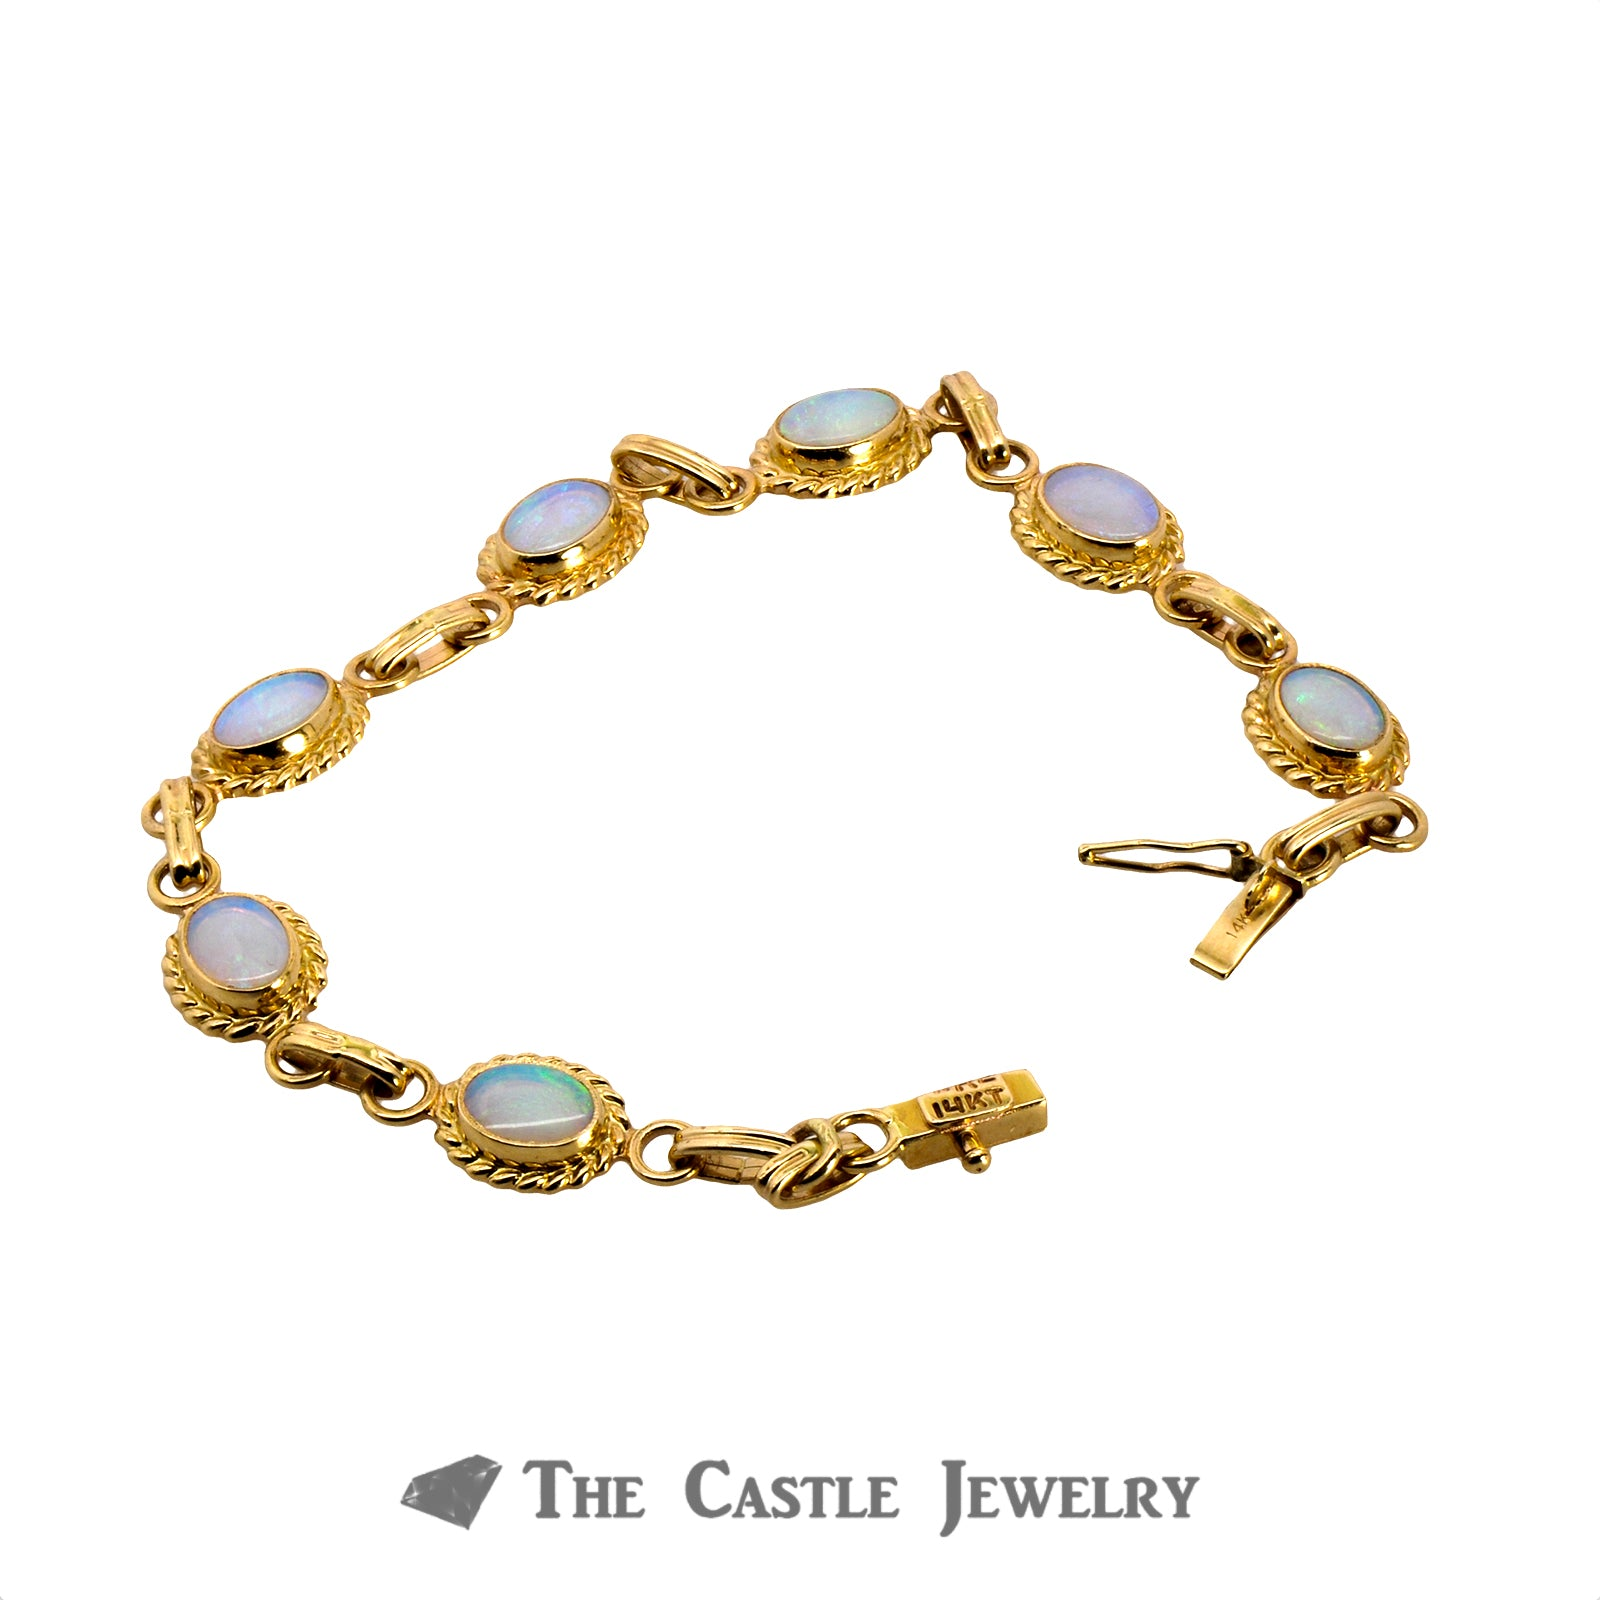 "7"" Oval Opal Bracelet with Rope Design Bezels Crafted in 14K Yellow Gold-1"